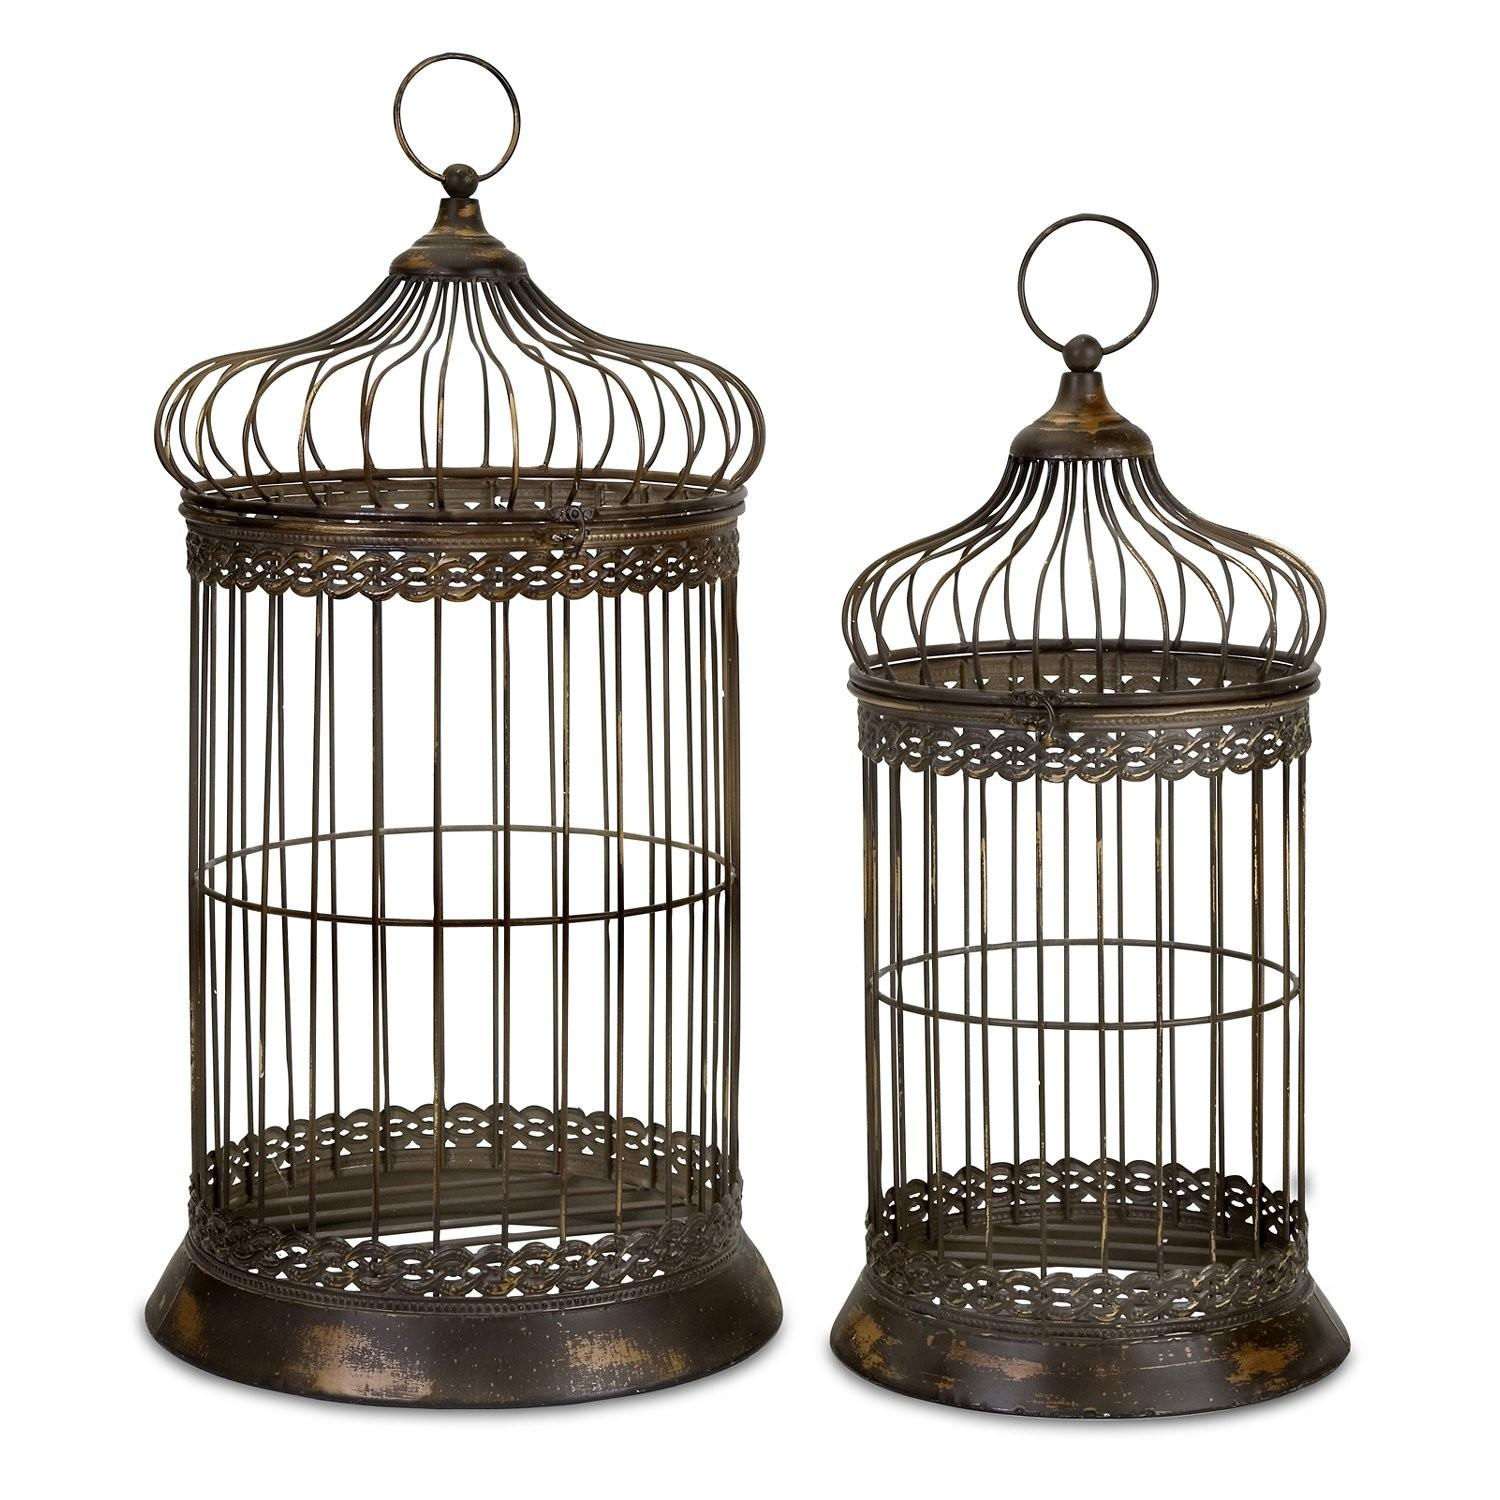 Used Outdoor Bird Aviary Sale Cages